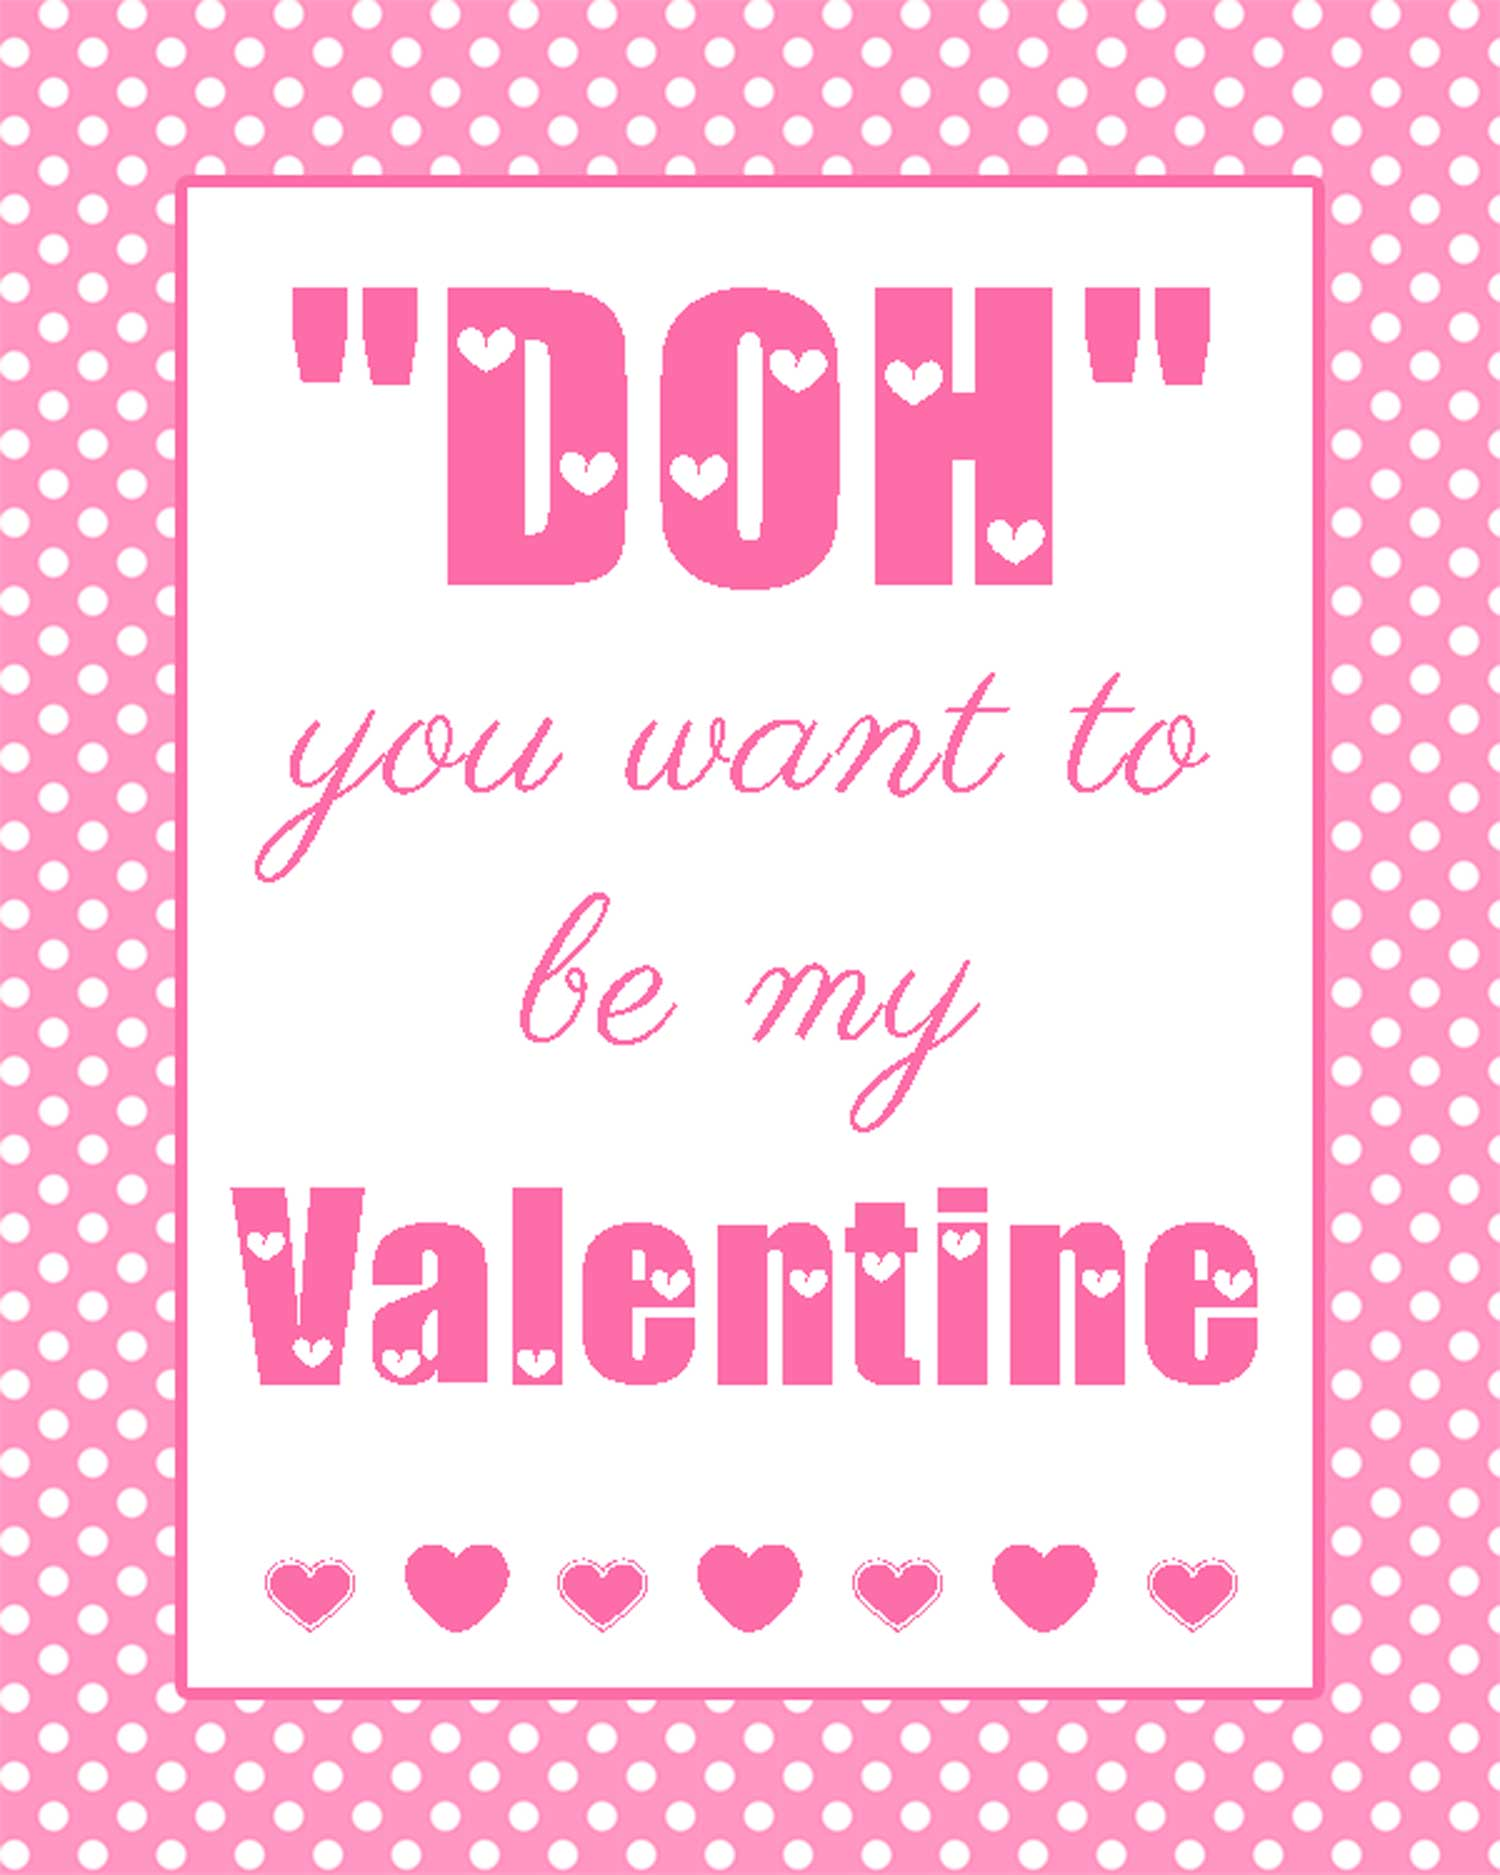 How Want Be My Valentine